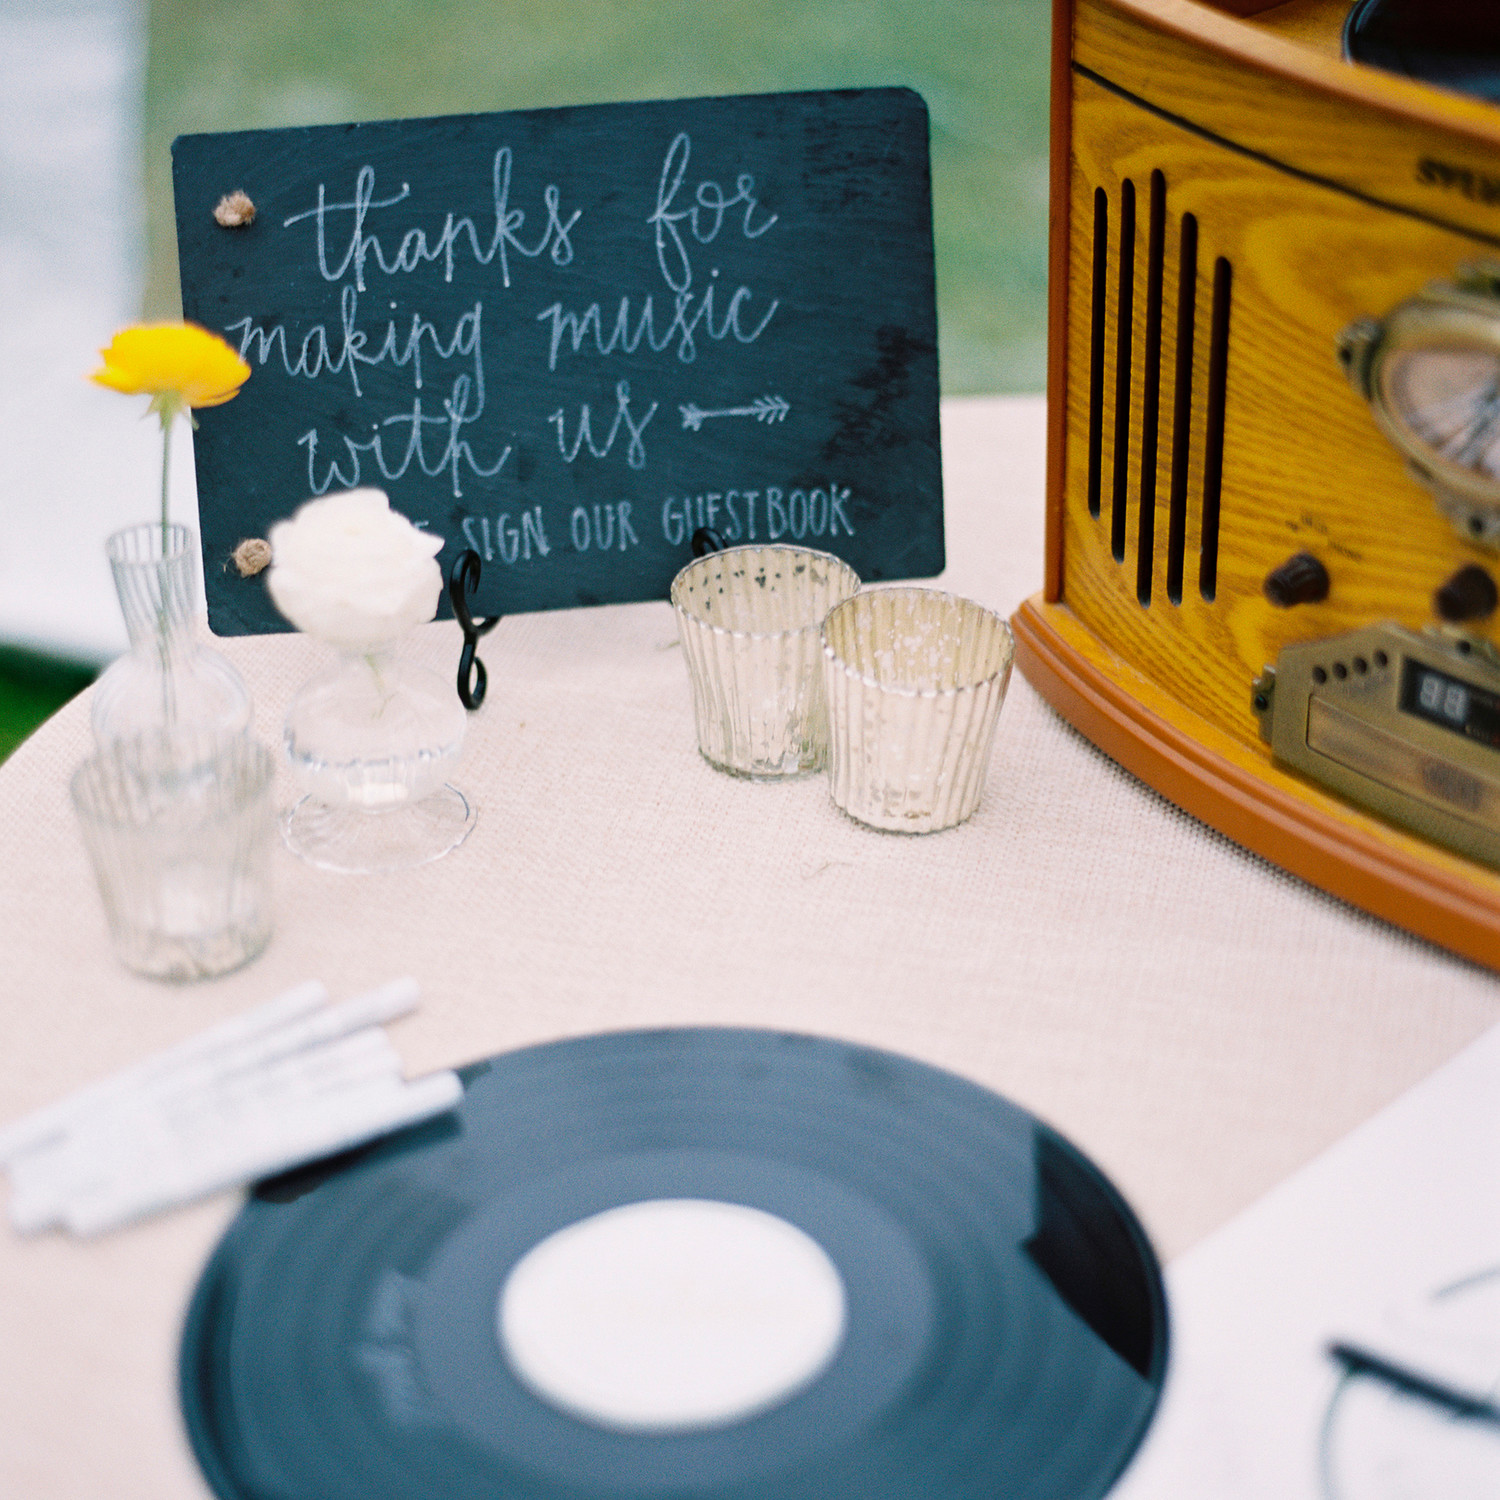 Fun Wedding Guest Book Ideas: Unique Wedding Guest Book Ideas That Aren't Actually Books